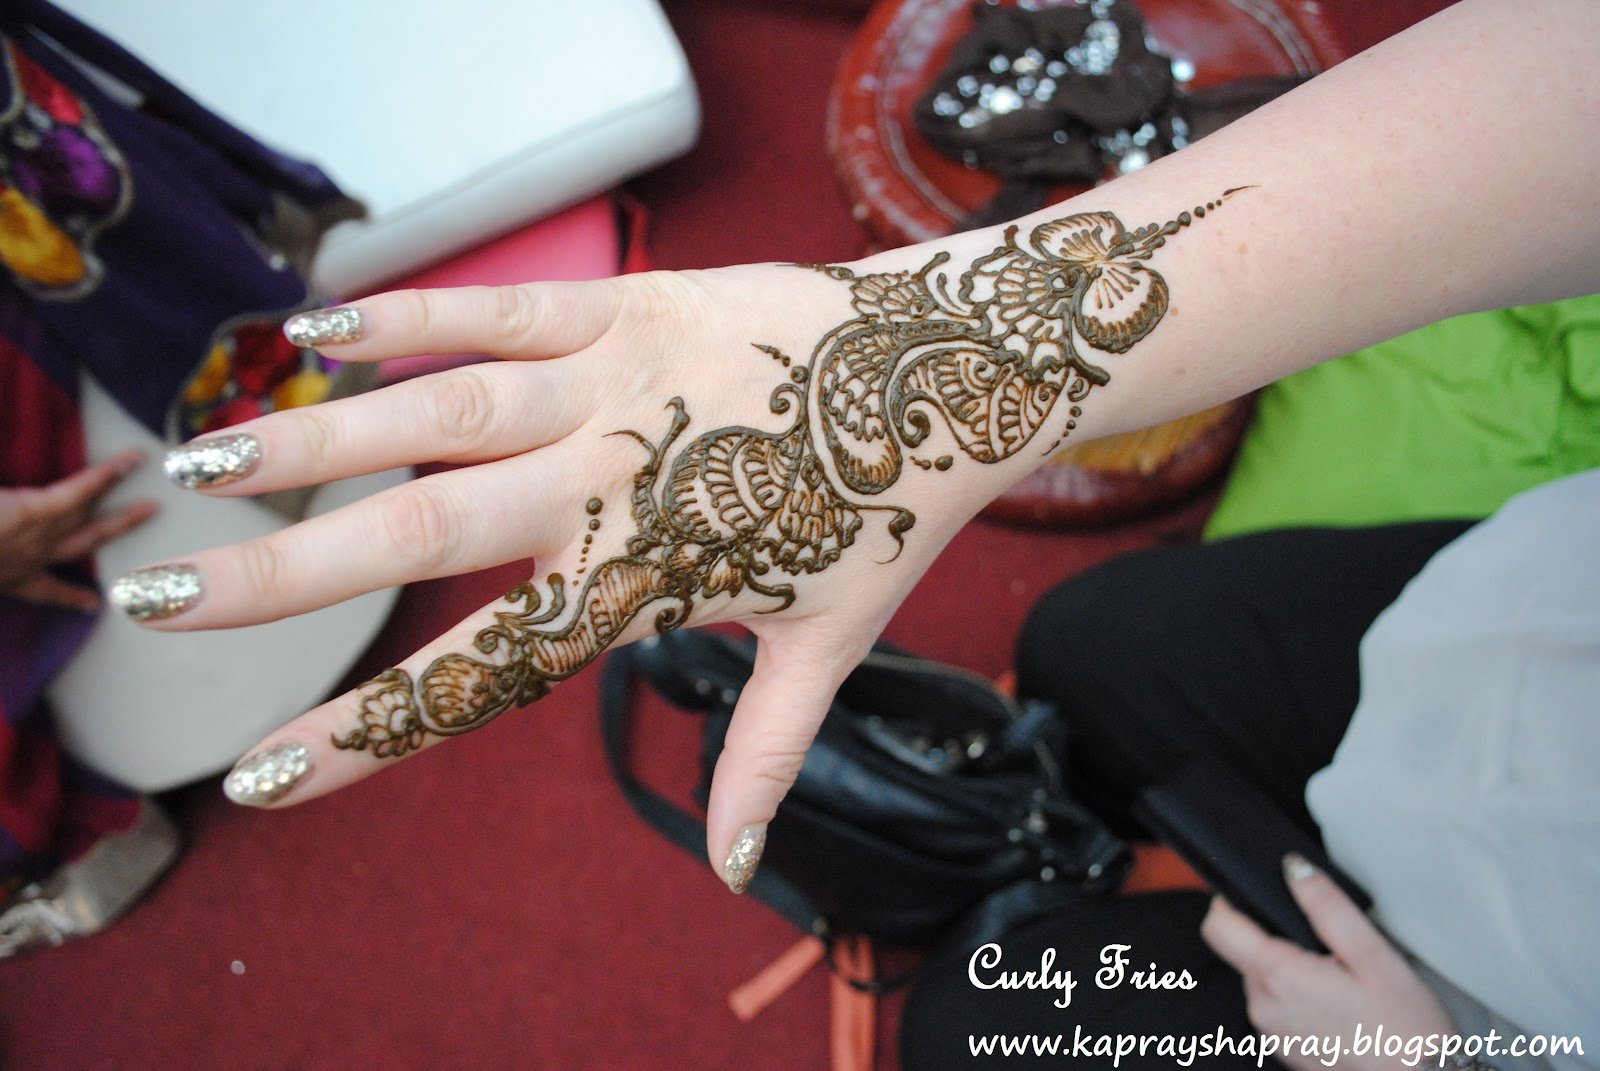 Curly Fries Dholki Night 4 Henna Hands And Friends